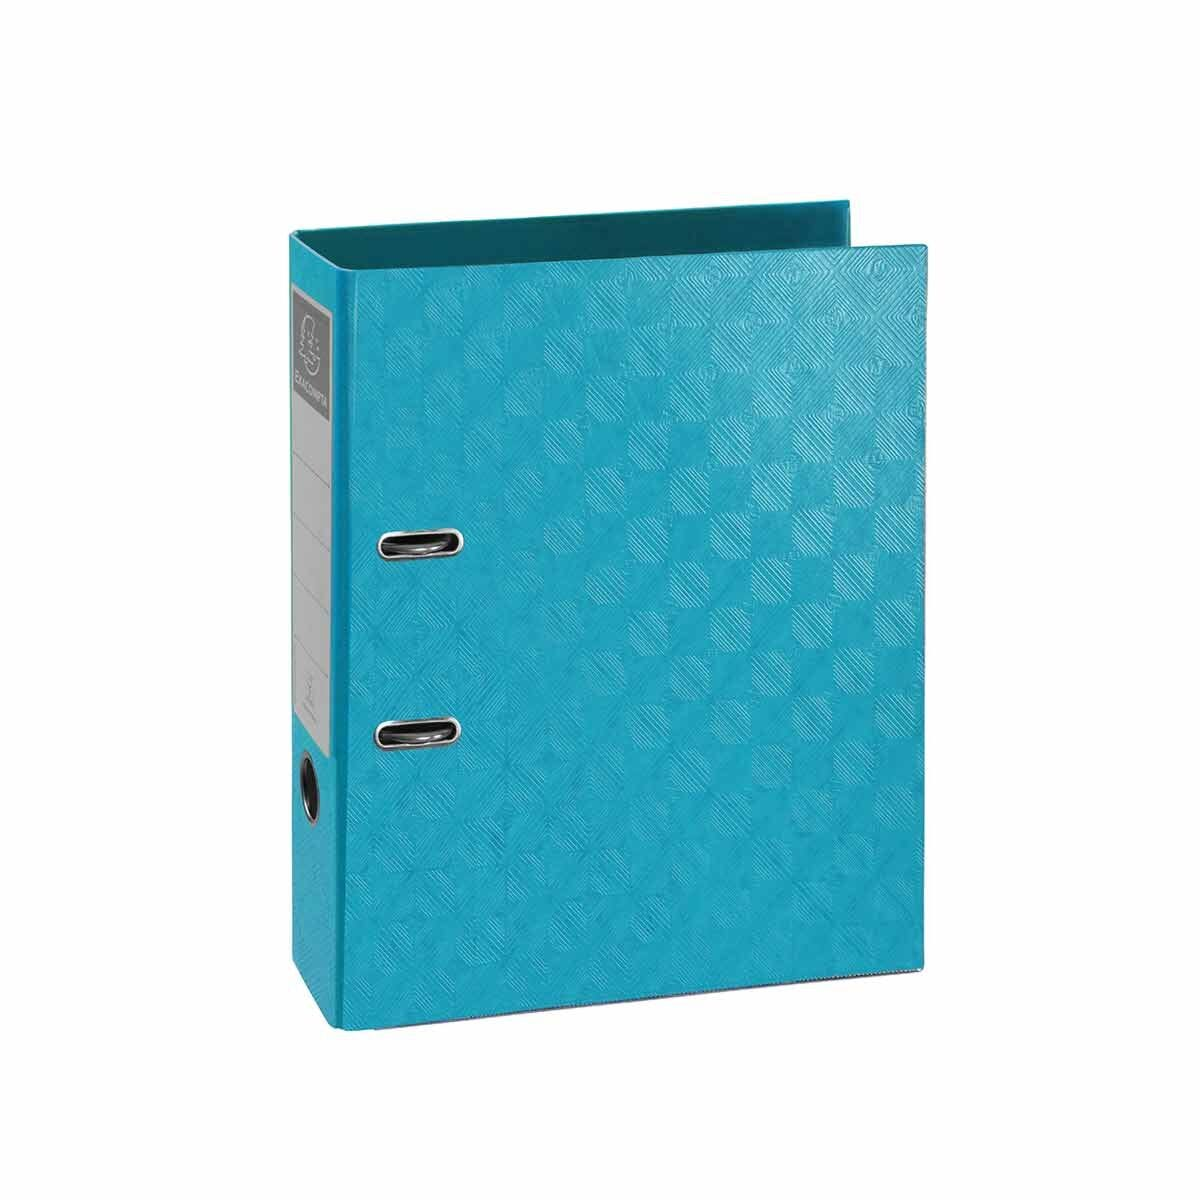 Exacompta 1928 PreTouch Lever Arch File A4 70mm Pack of 10 Turquoise